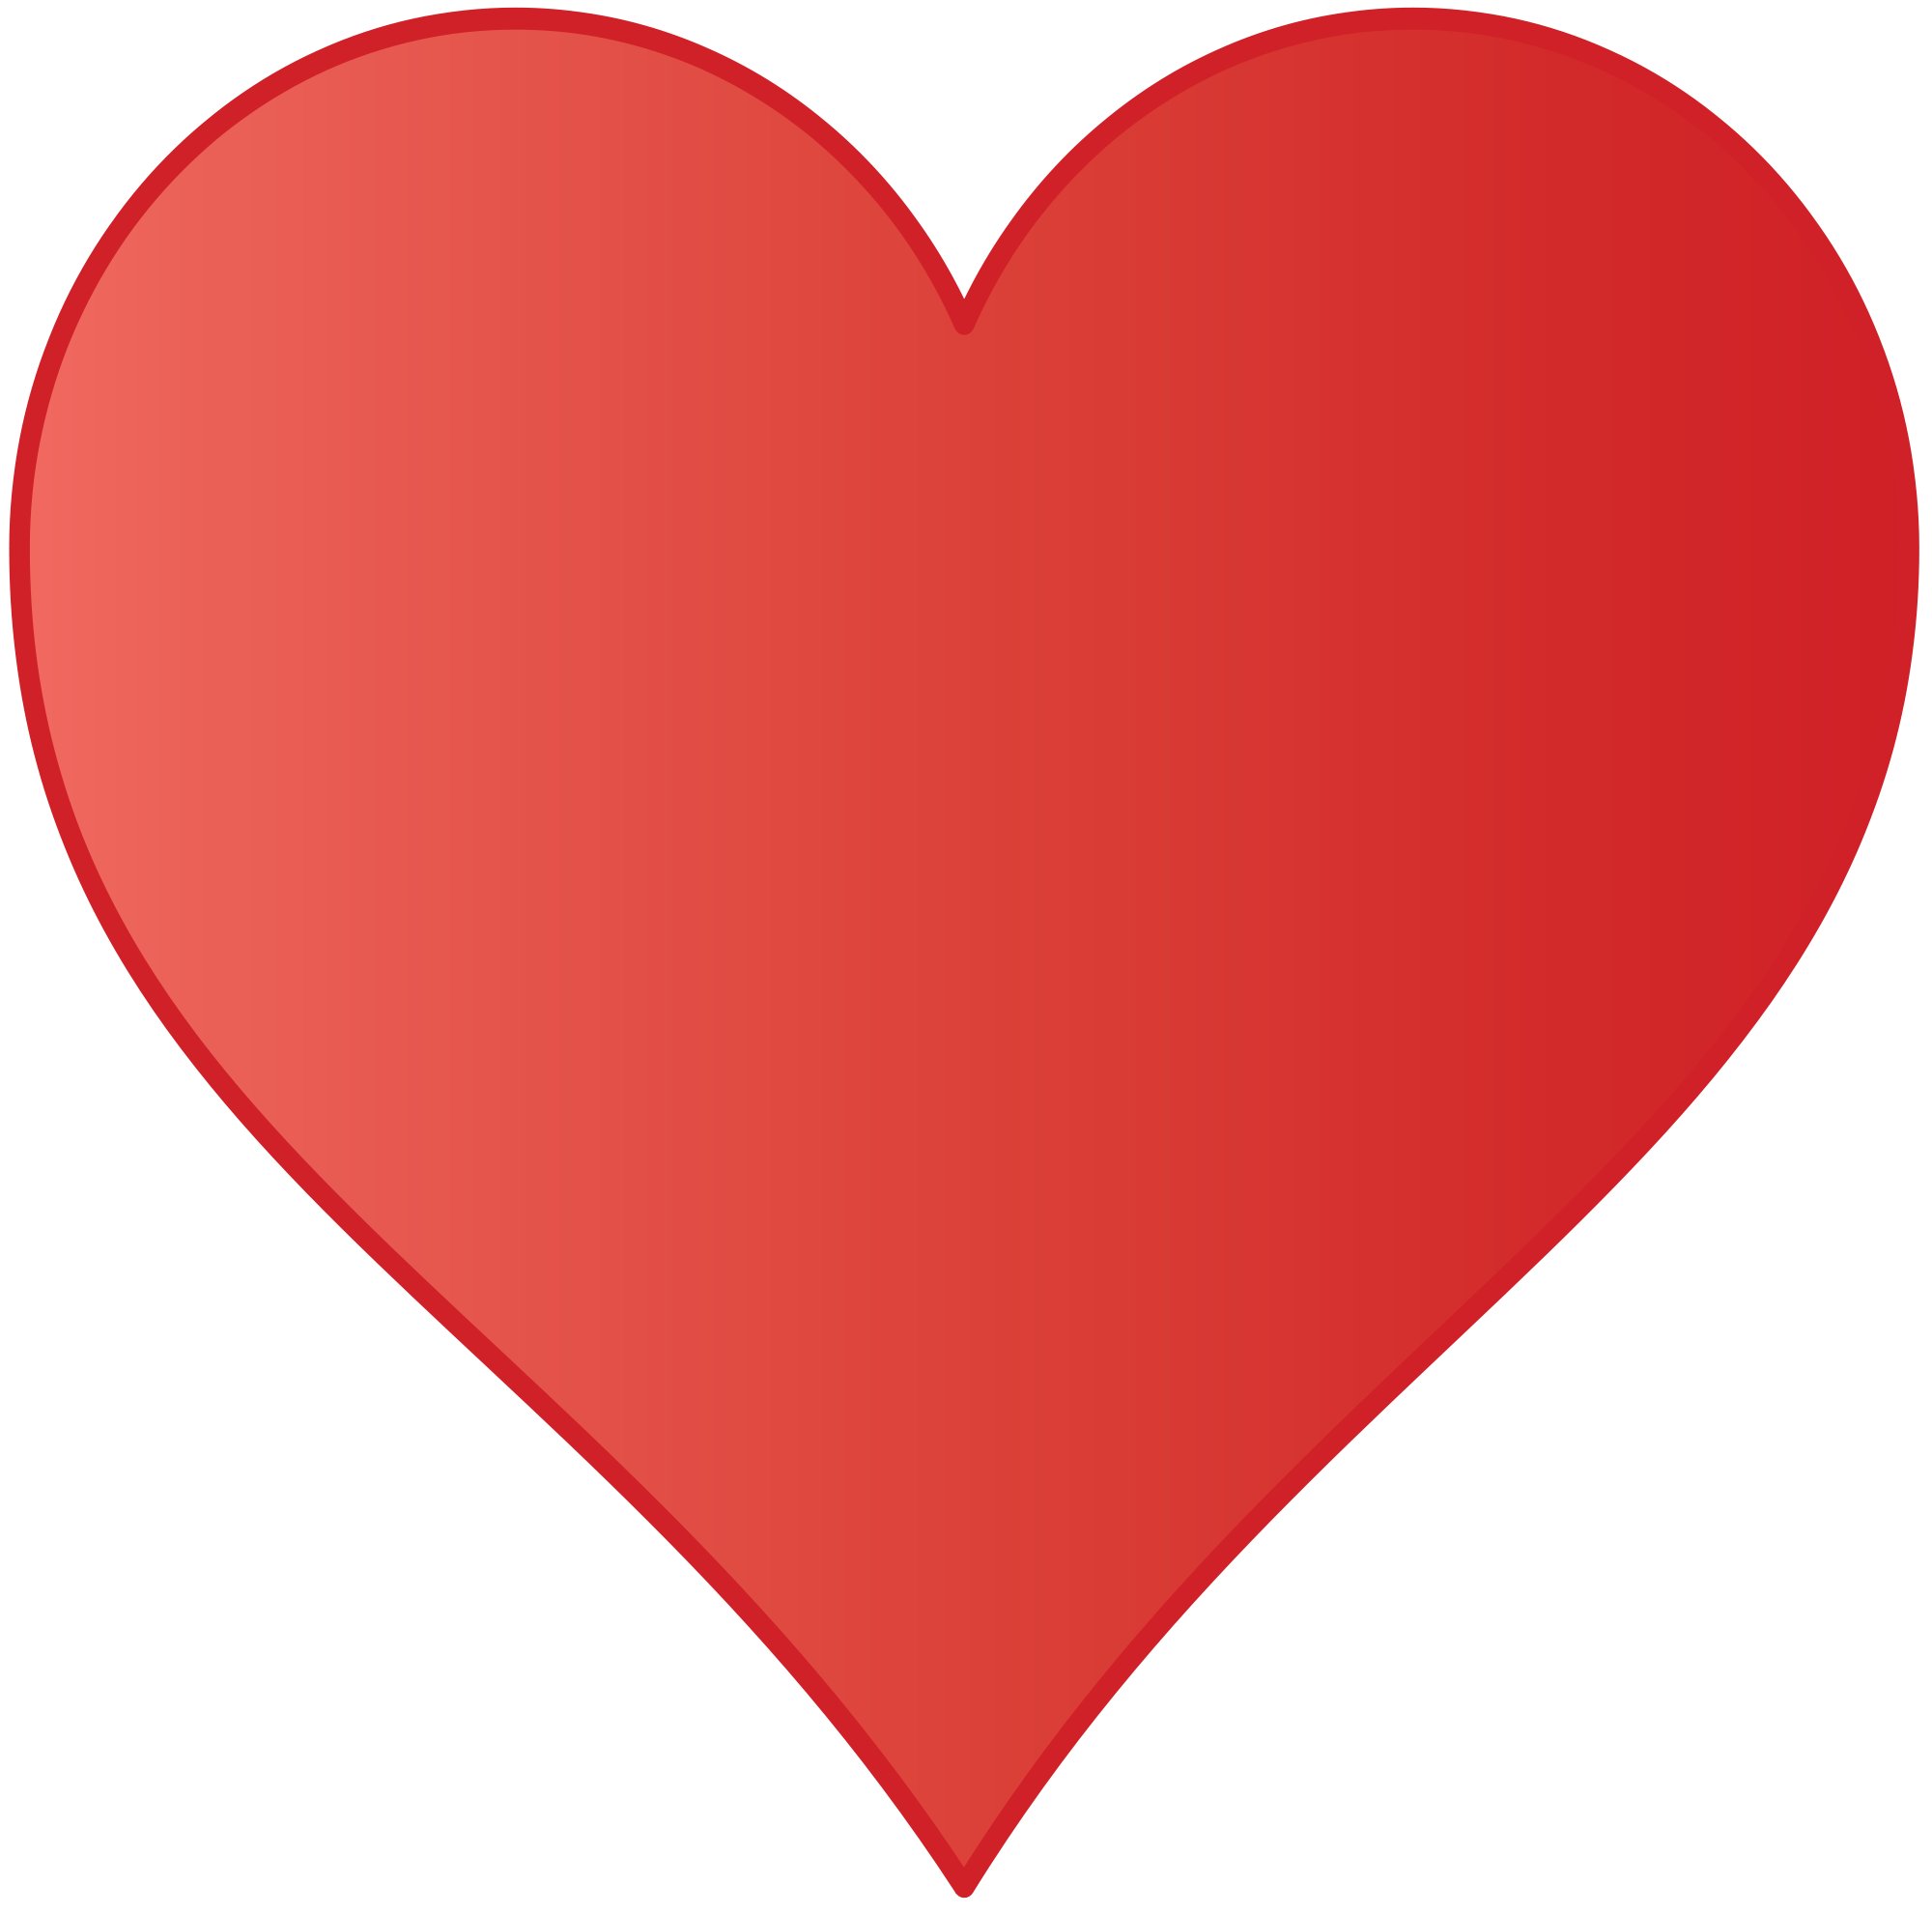 Cuore kyocenter for Clipart cuore